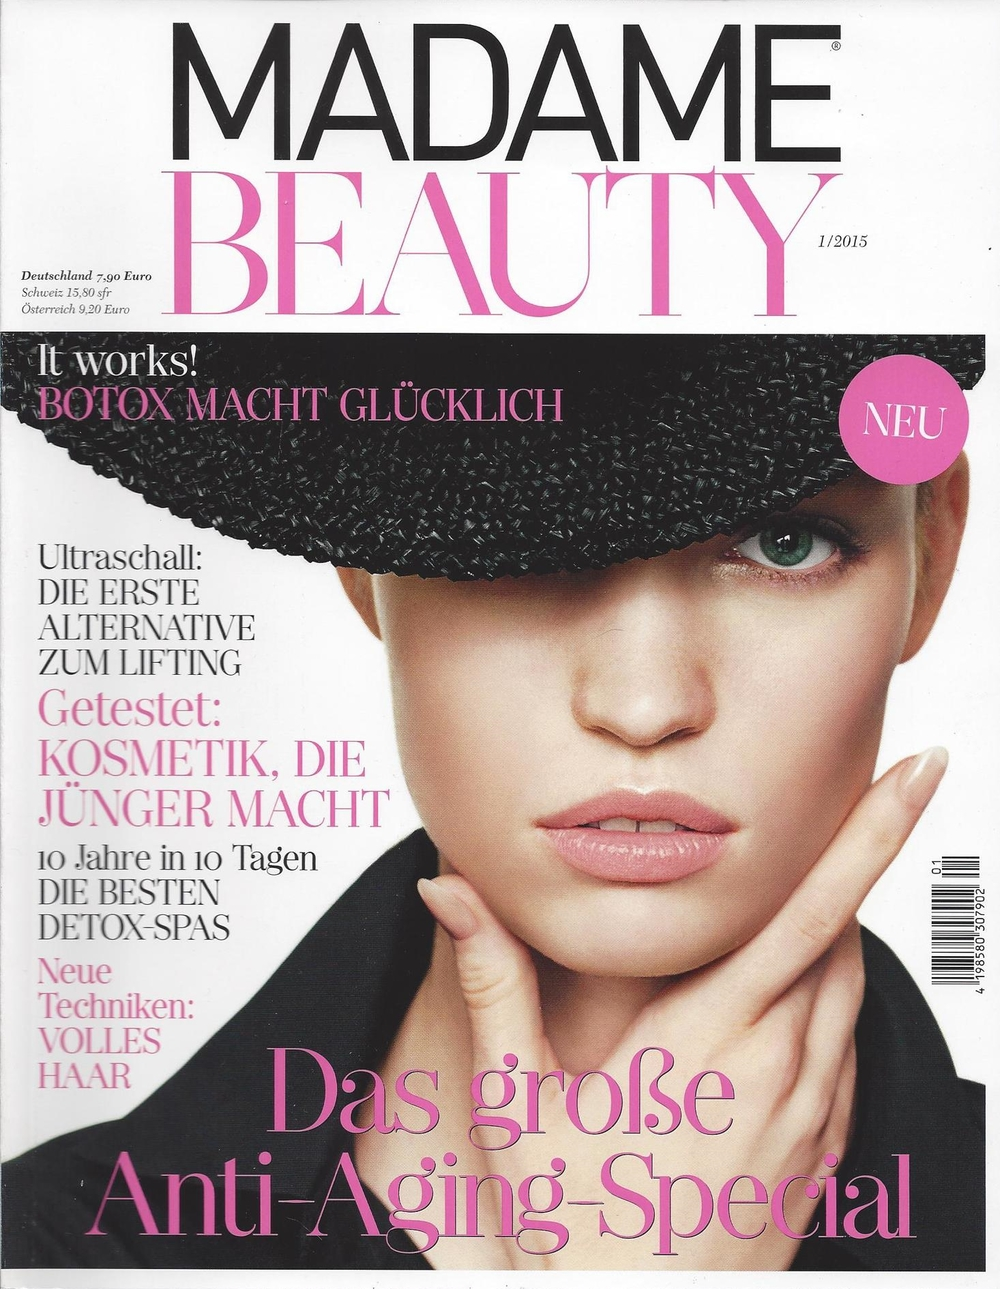 Madame Beauty - Cover.jpg